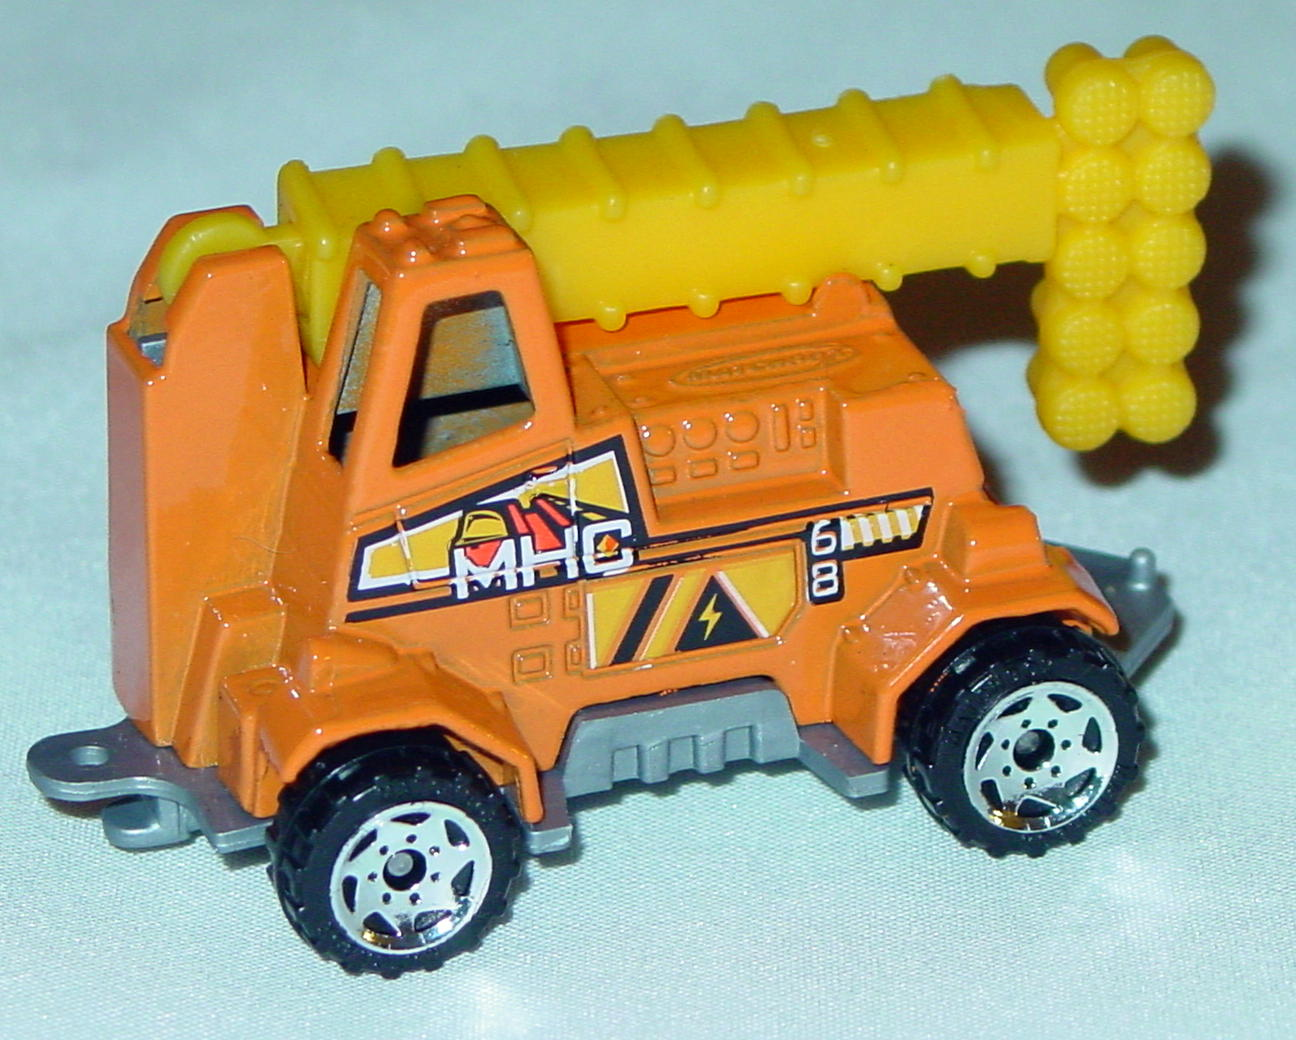 Offshore SuperFast 60 M 3 - 2003 68 Mobile Light Truck Orange MHC68 made in China